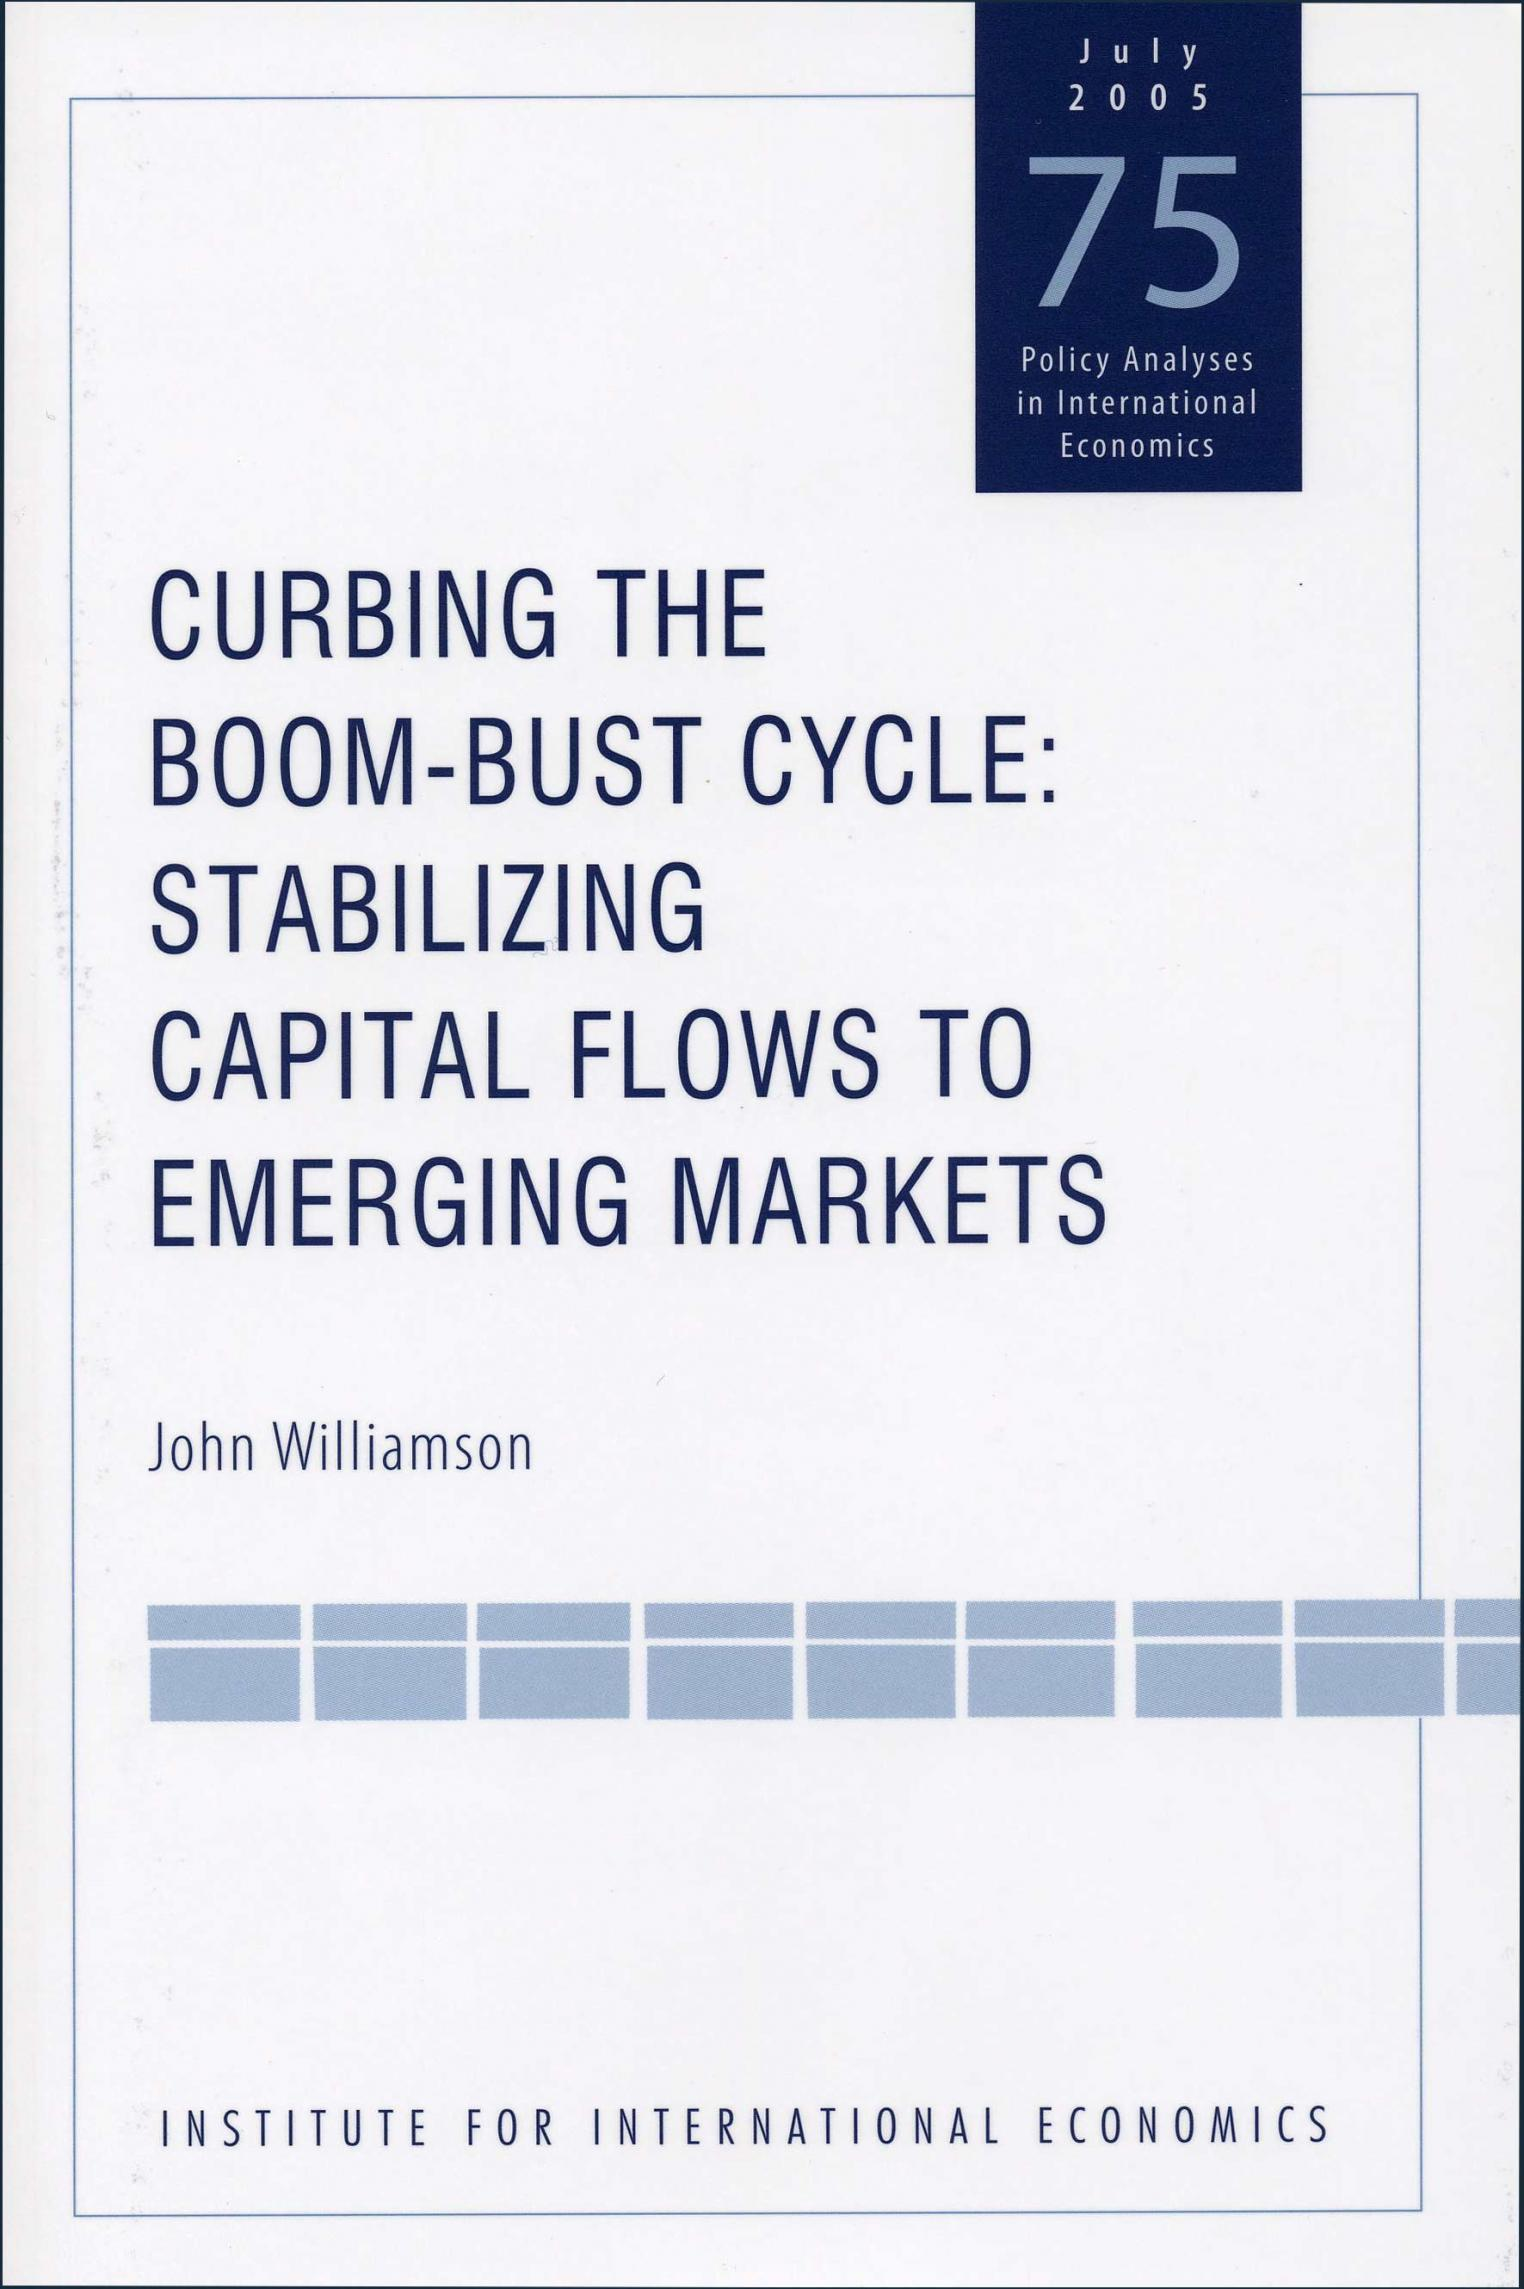 Curbing the Boom-Bust Cycle: Stabilizing Capital Flows to Emerging Markets